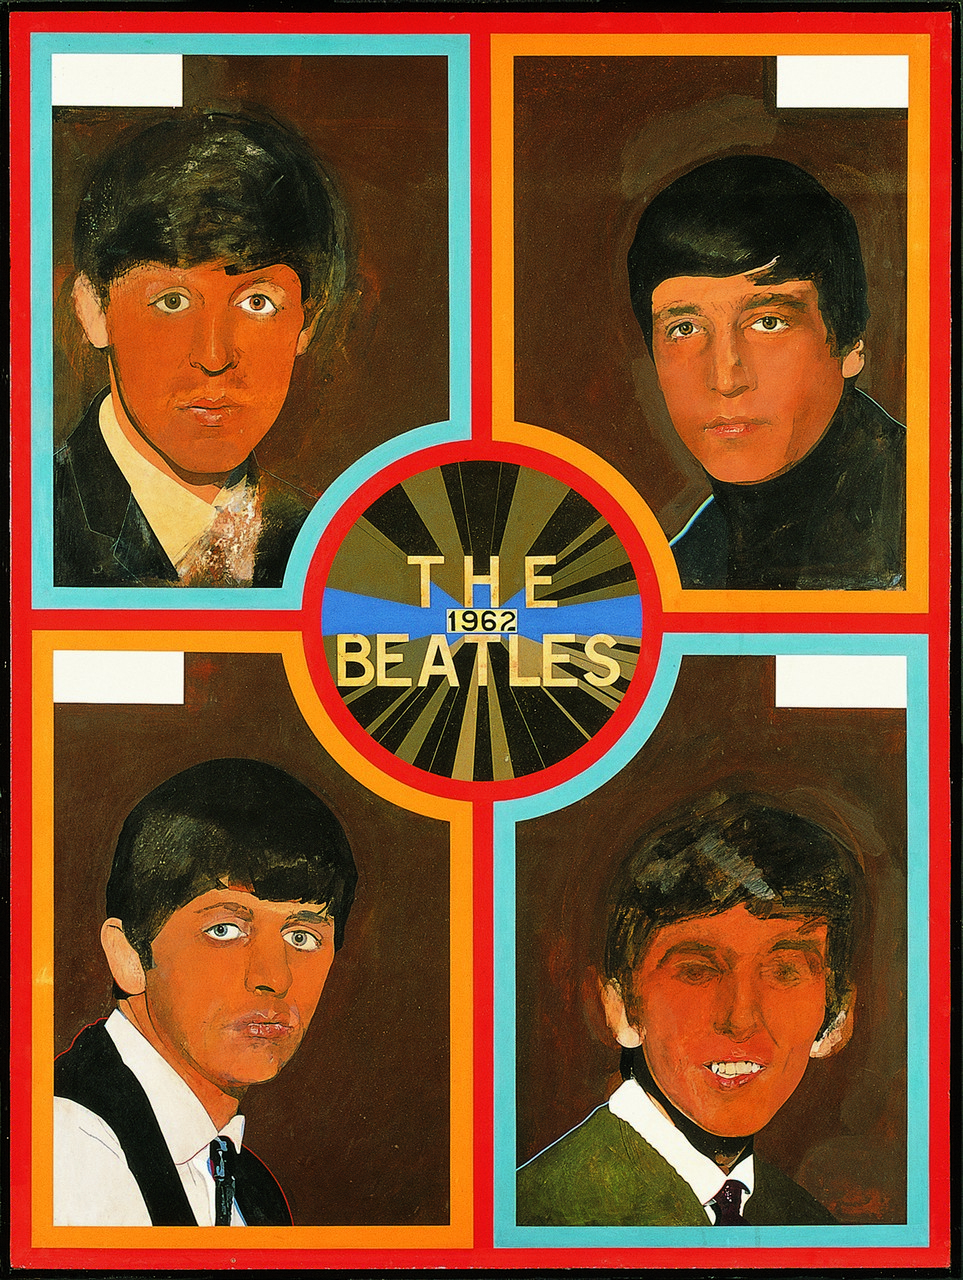 Lot 5A - Sir Peter Blake (b.1932) - The Beatles, 1962, 2012, 20 colour screen print, printed on Somerset